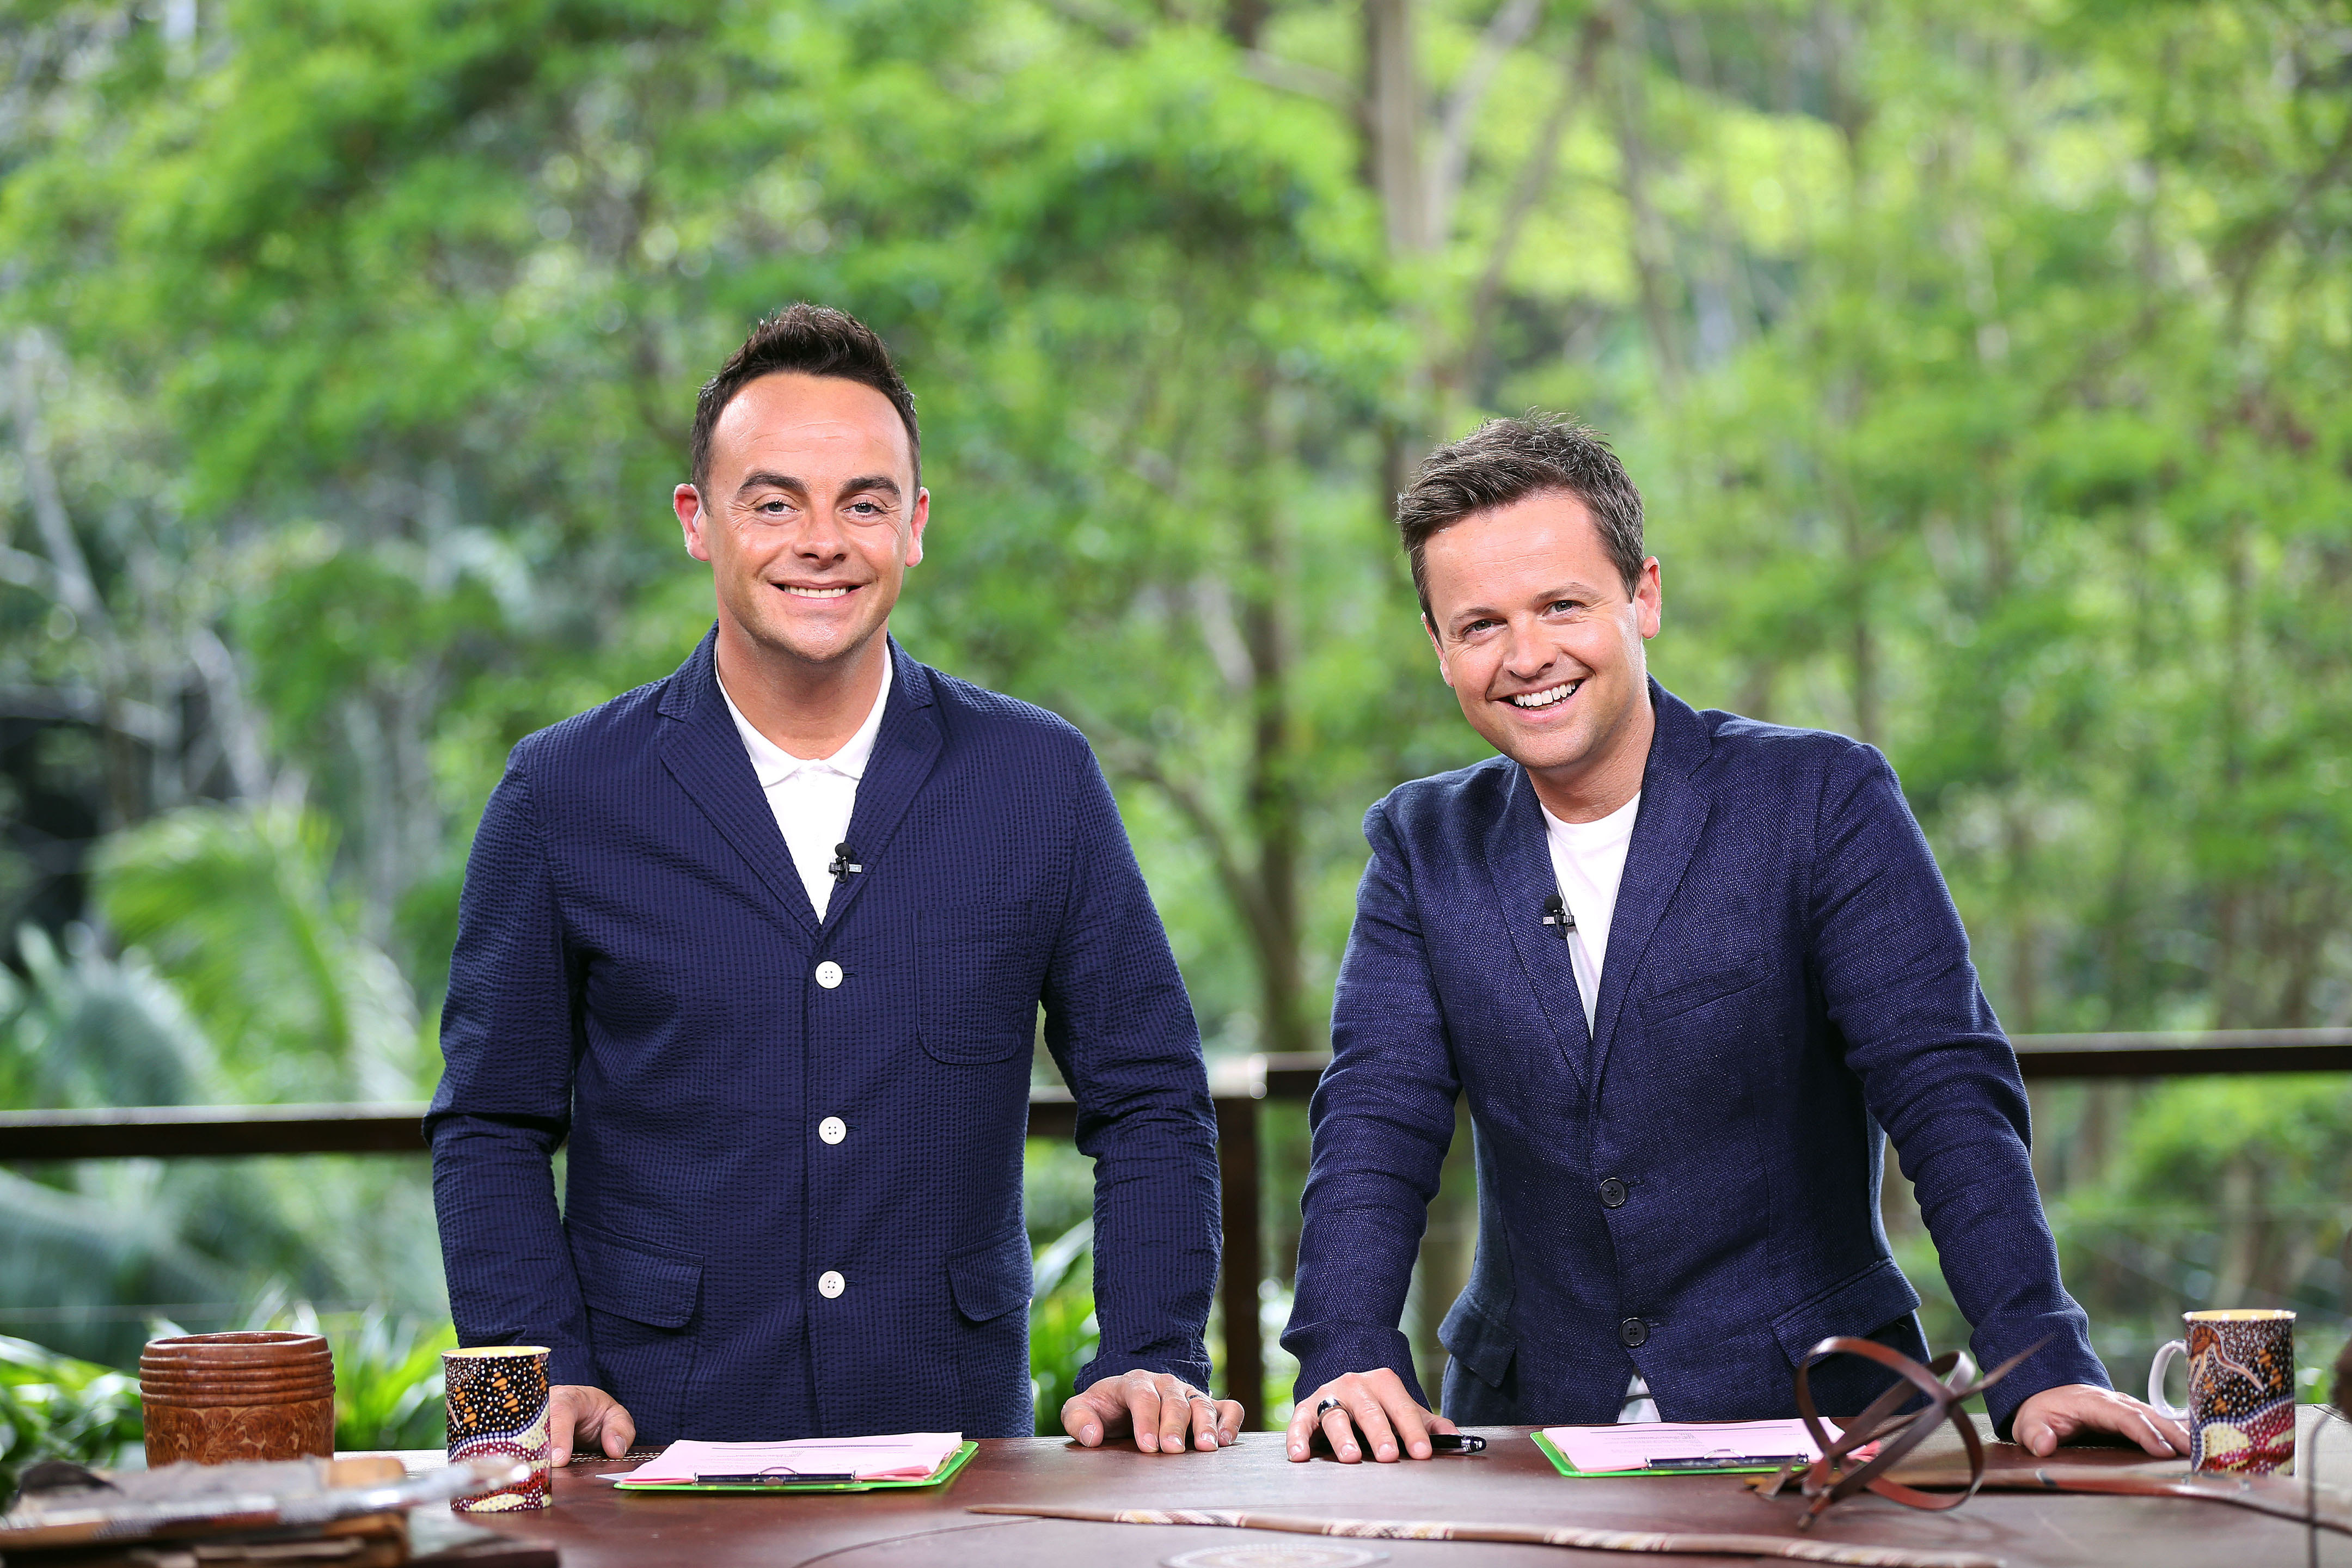 I'm a Celebrity: Who's your favourite so far?